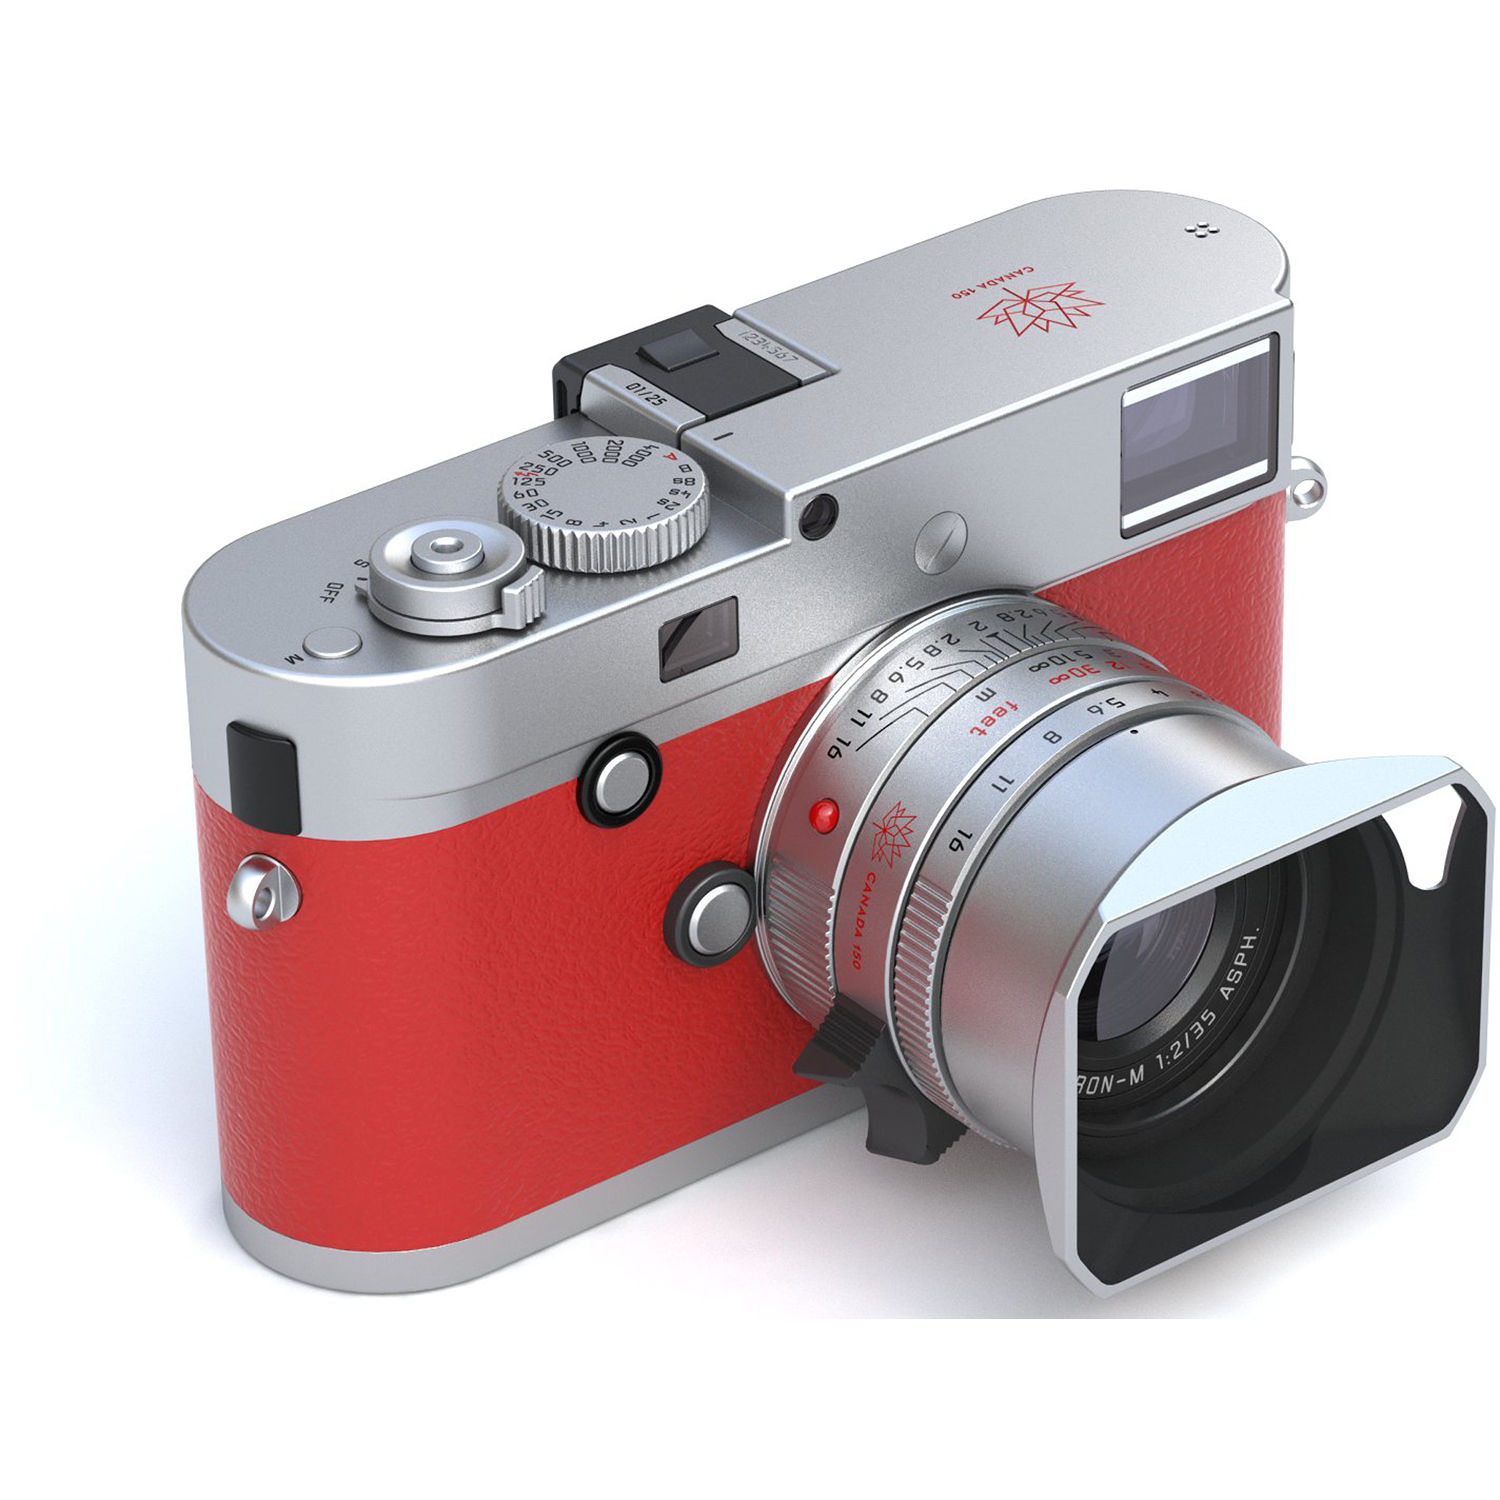 Leica M-P (Typ 240) Digital Rangefinder Camera with 35mm f/2 Lens (